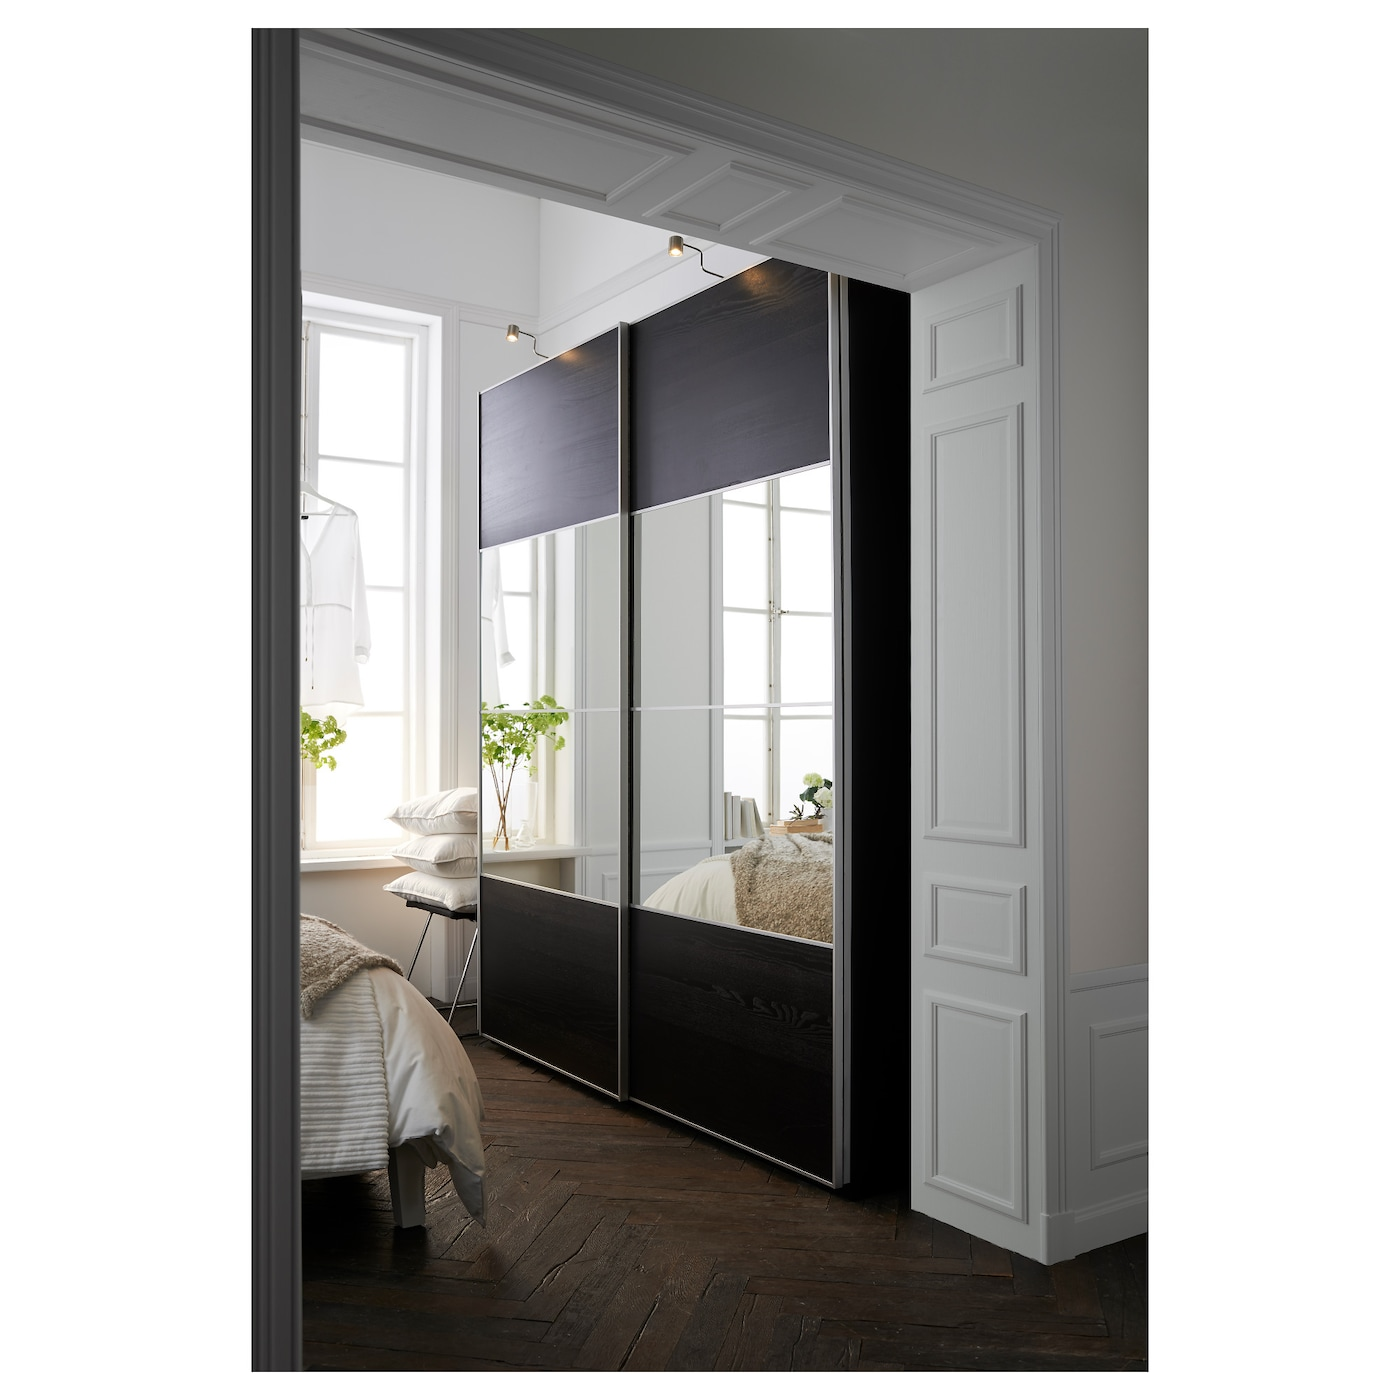 Pax wardrobe black brown auli ilseng 200x66x236 cm ikea - Ikea decoration murale ...